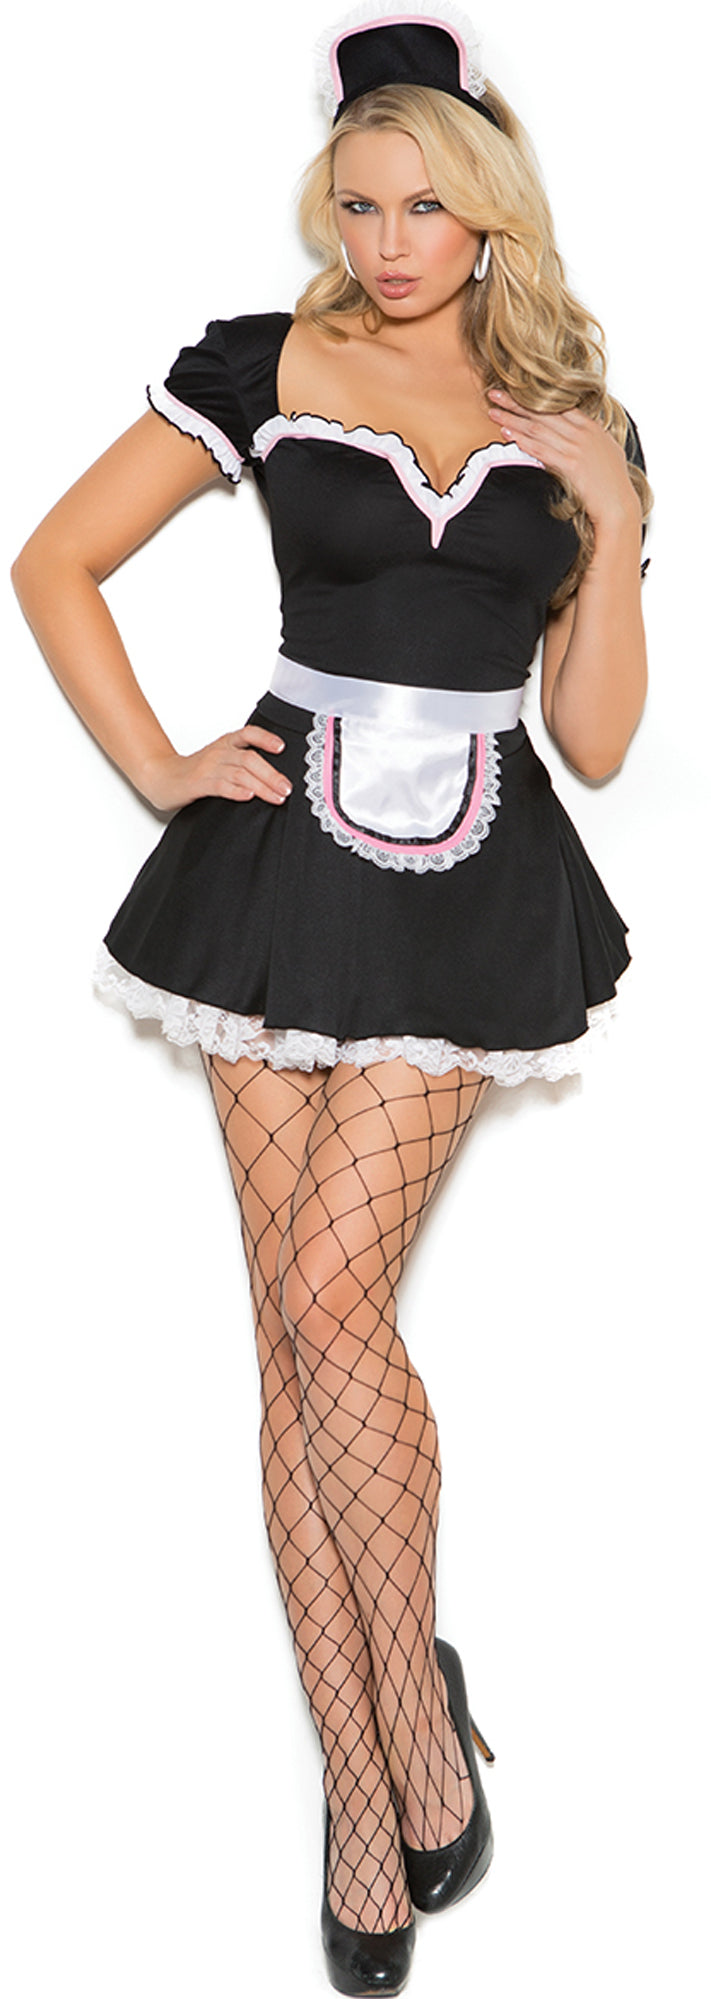 EM-9132 Maid To Please costume front